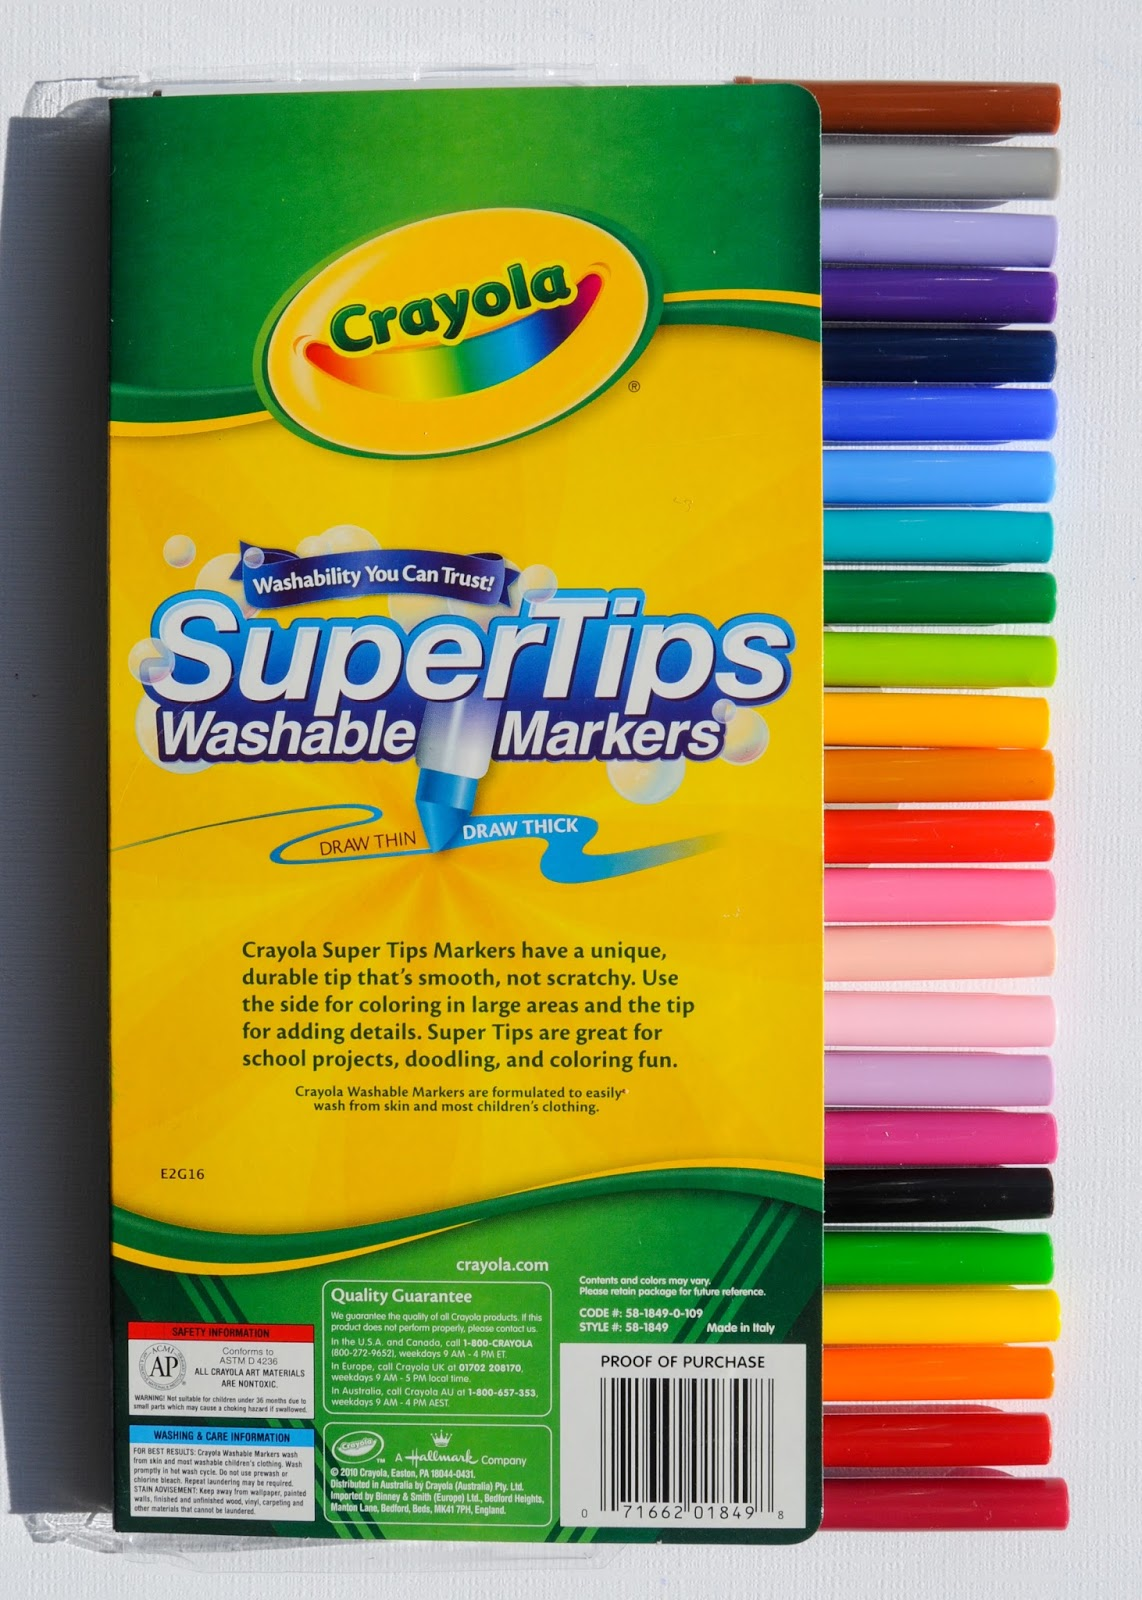 Crayola Super Tips Washable Markers What S Inside The Box Jenny S Crayon Collection